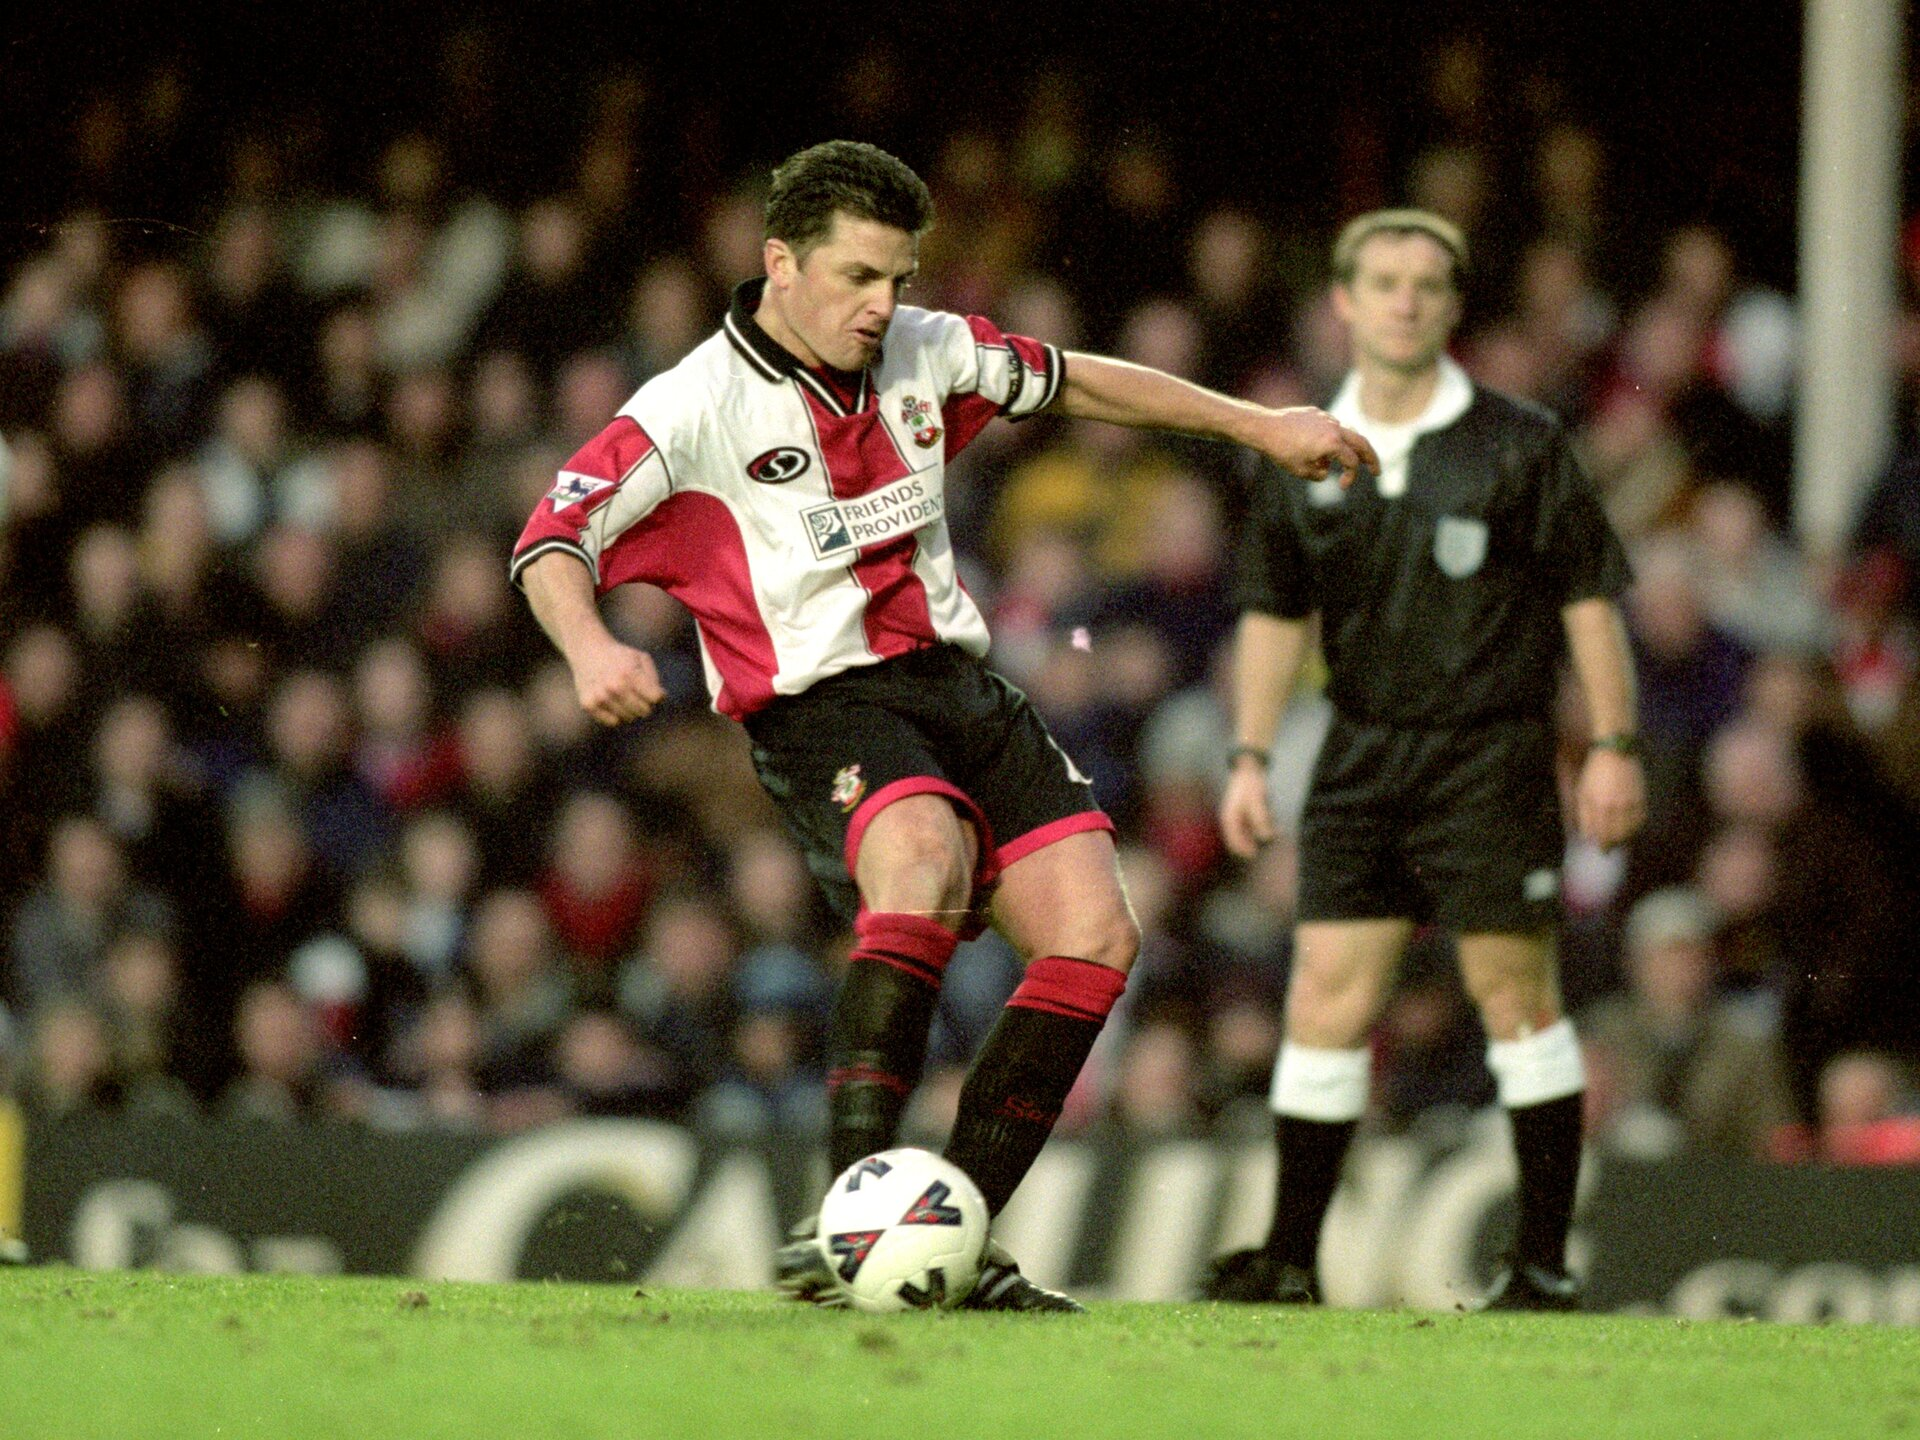 27 Jan 2001:  Jason Dodd of Southampton scores a penalty during the FA Cup Fourth Round match against Sheffield Wednesday at the Dell in Southampton, England. Southampton won 3-1. \ Mandatory Credit: Craig Prentis /Allsport